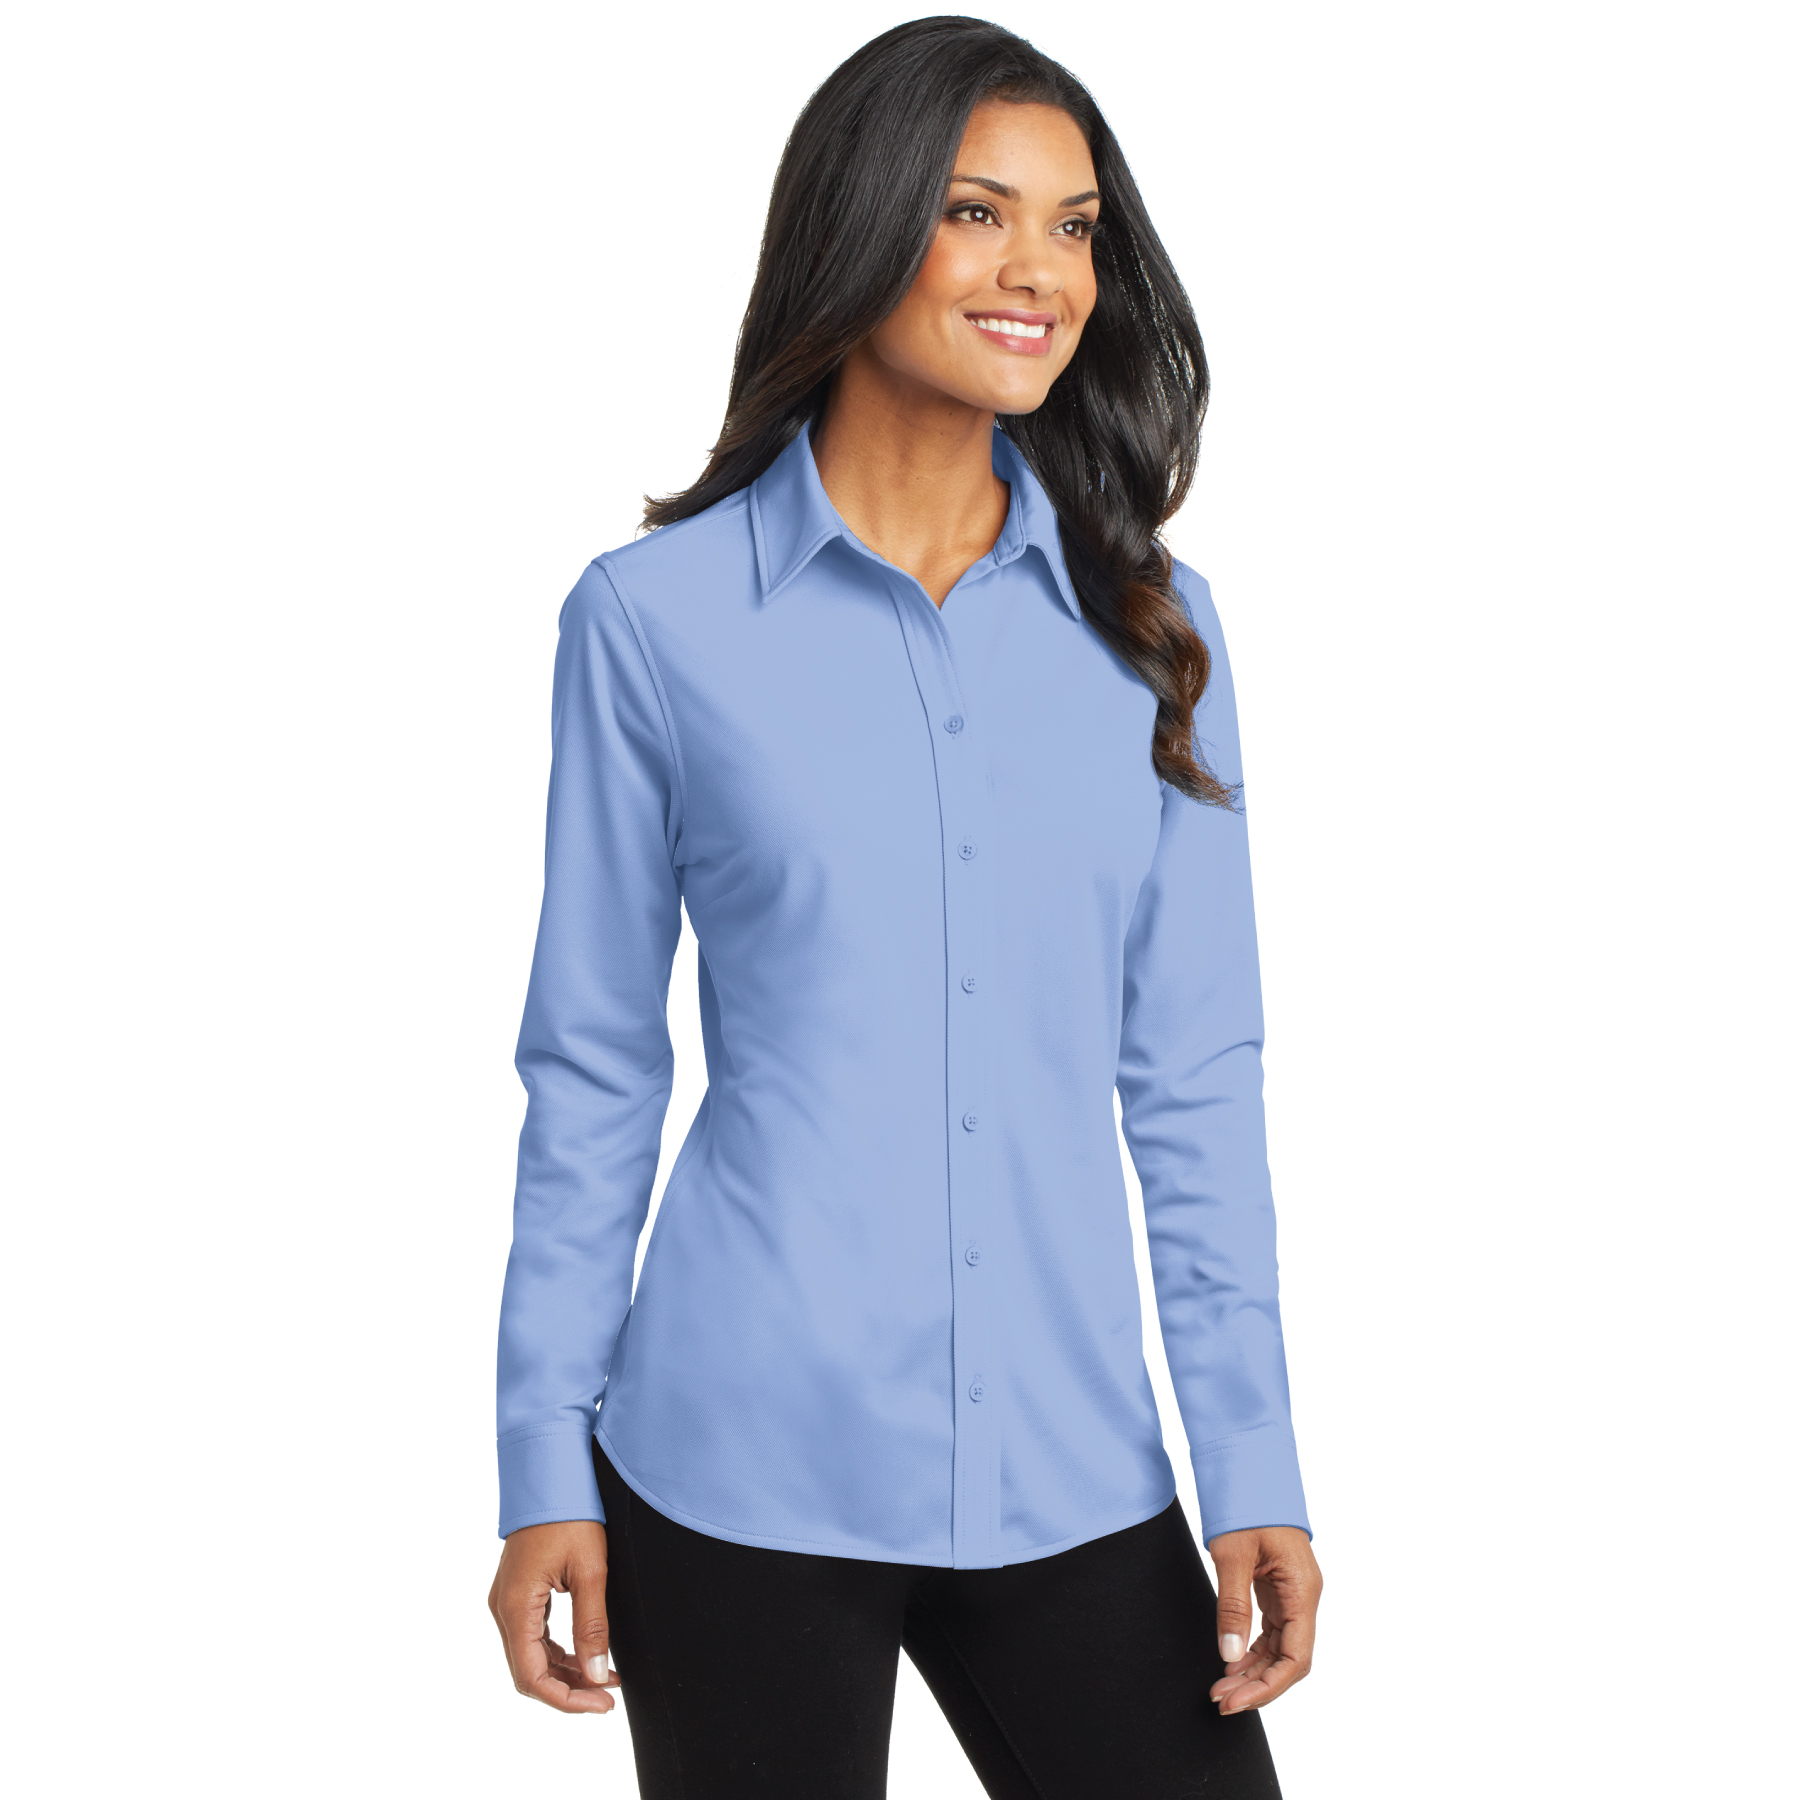 Ladies Dimension Knit Dress Shirt - RCL4088